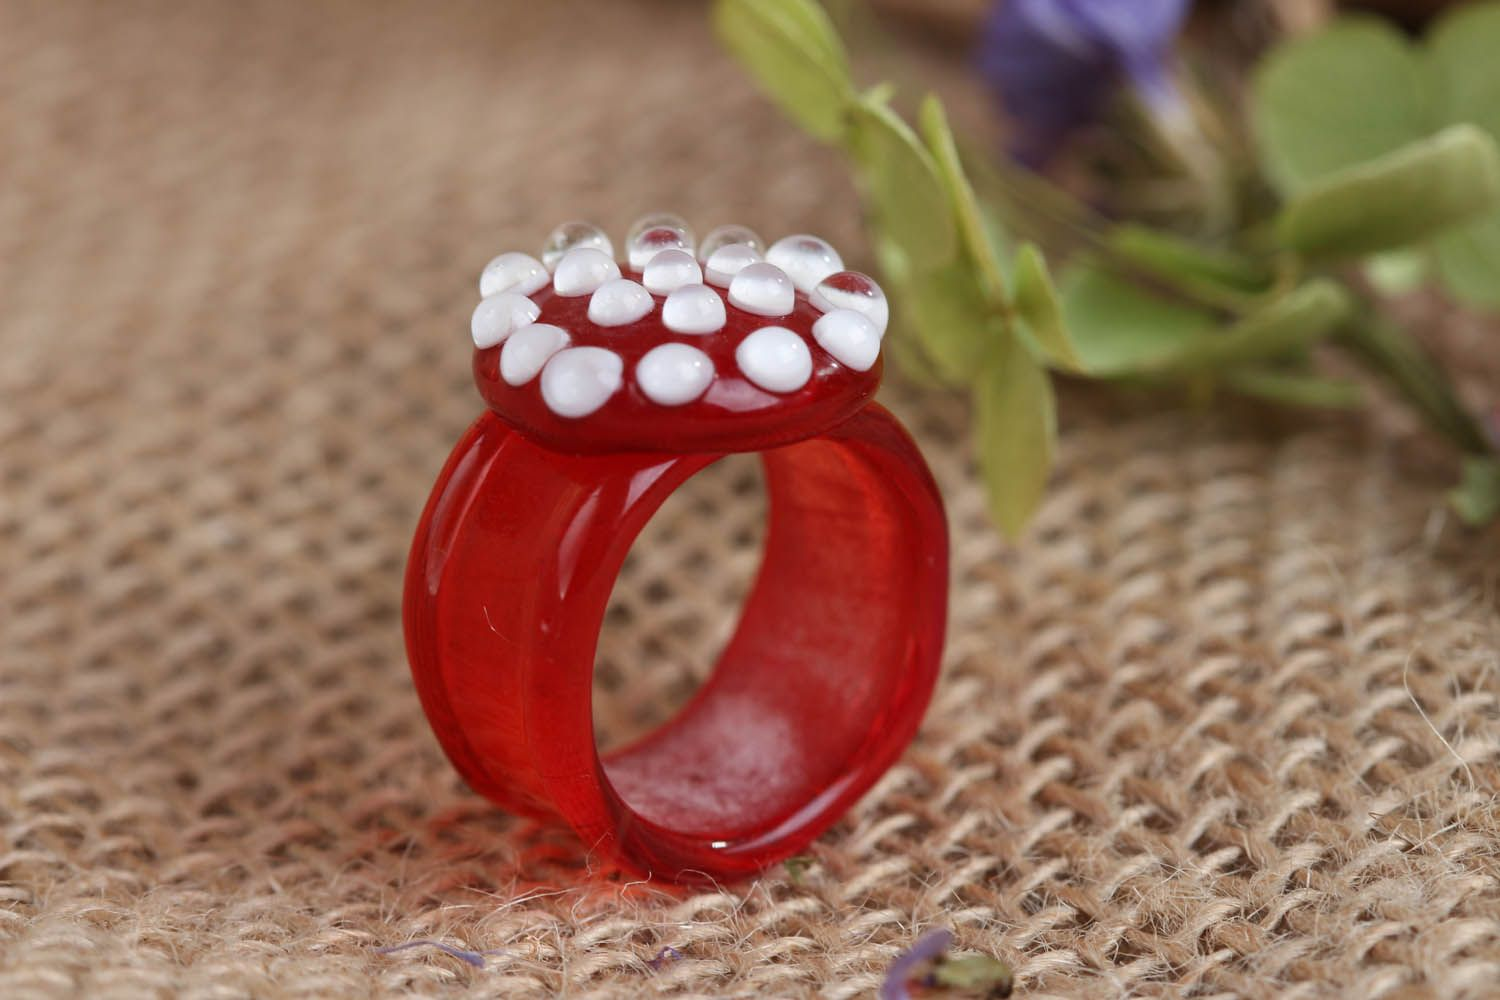 Homemade glass ring Death Cup Blossom photo 1